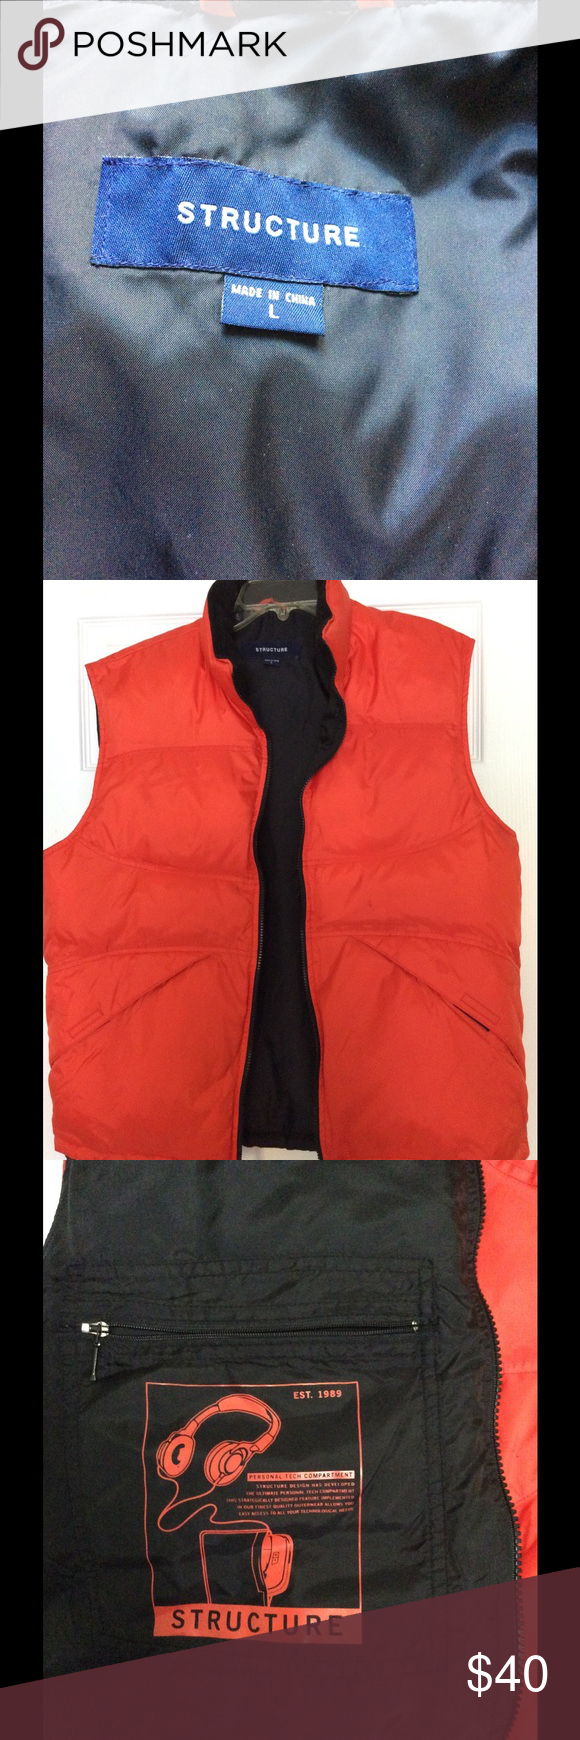 MUST GO!! ❤️Structure down vest❤️❤️ Perfect for the cold weather! Nice fleece collar to keep your neck warm! Two outer pockets and one big inner pocket with zipper closure for your essentials. Like new. structure Jackets & Coats Vests